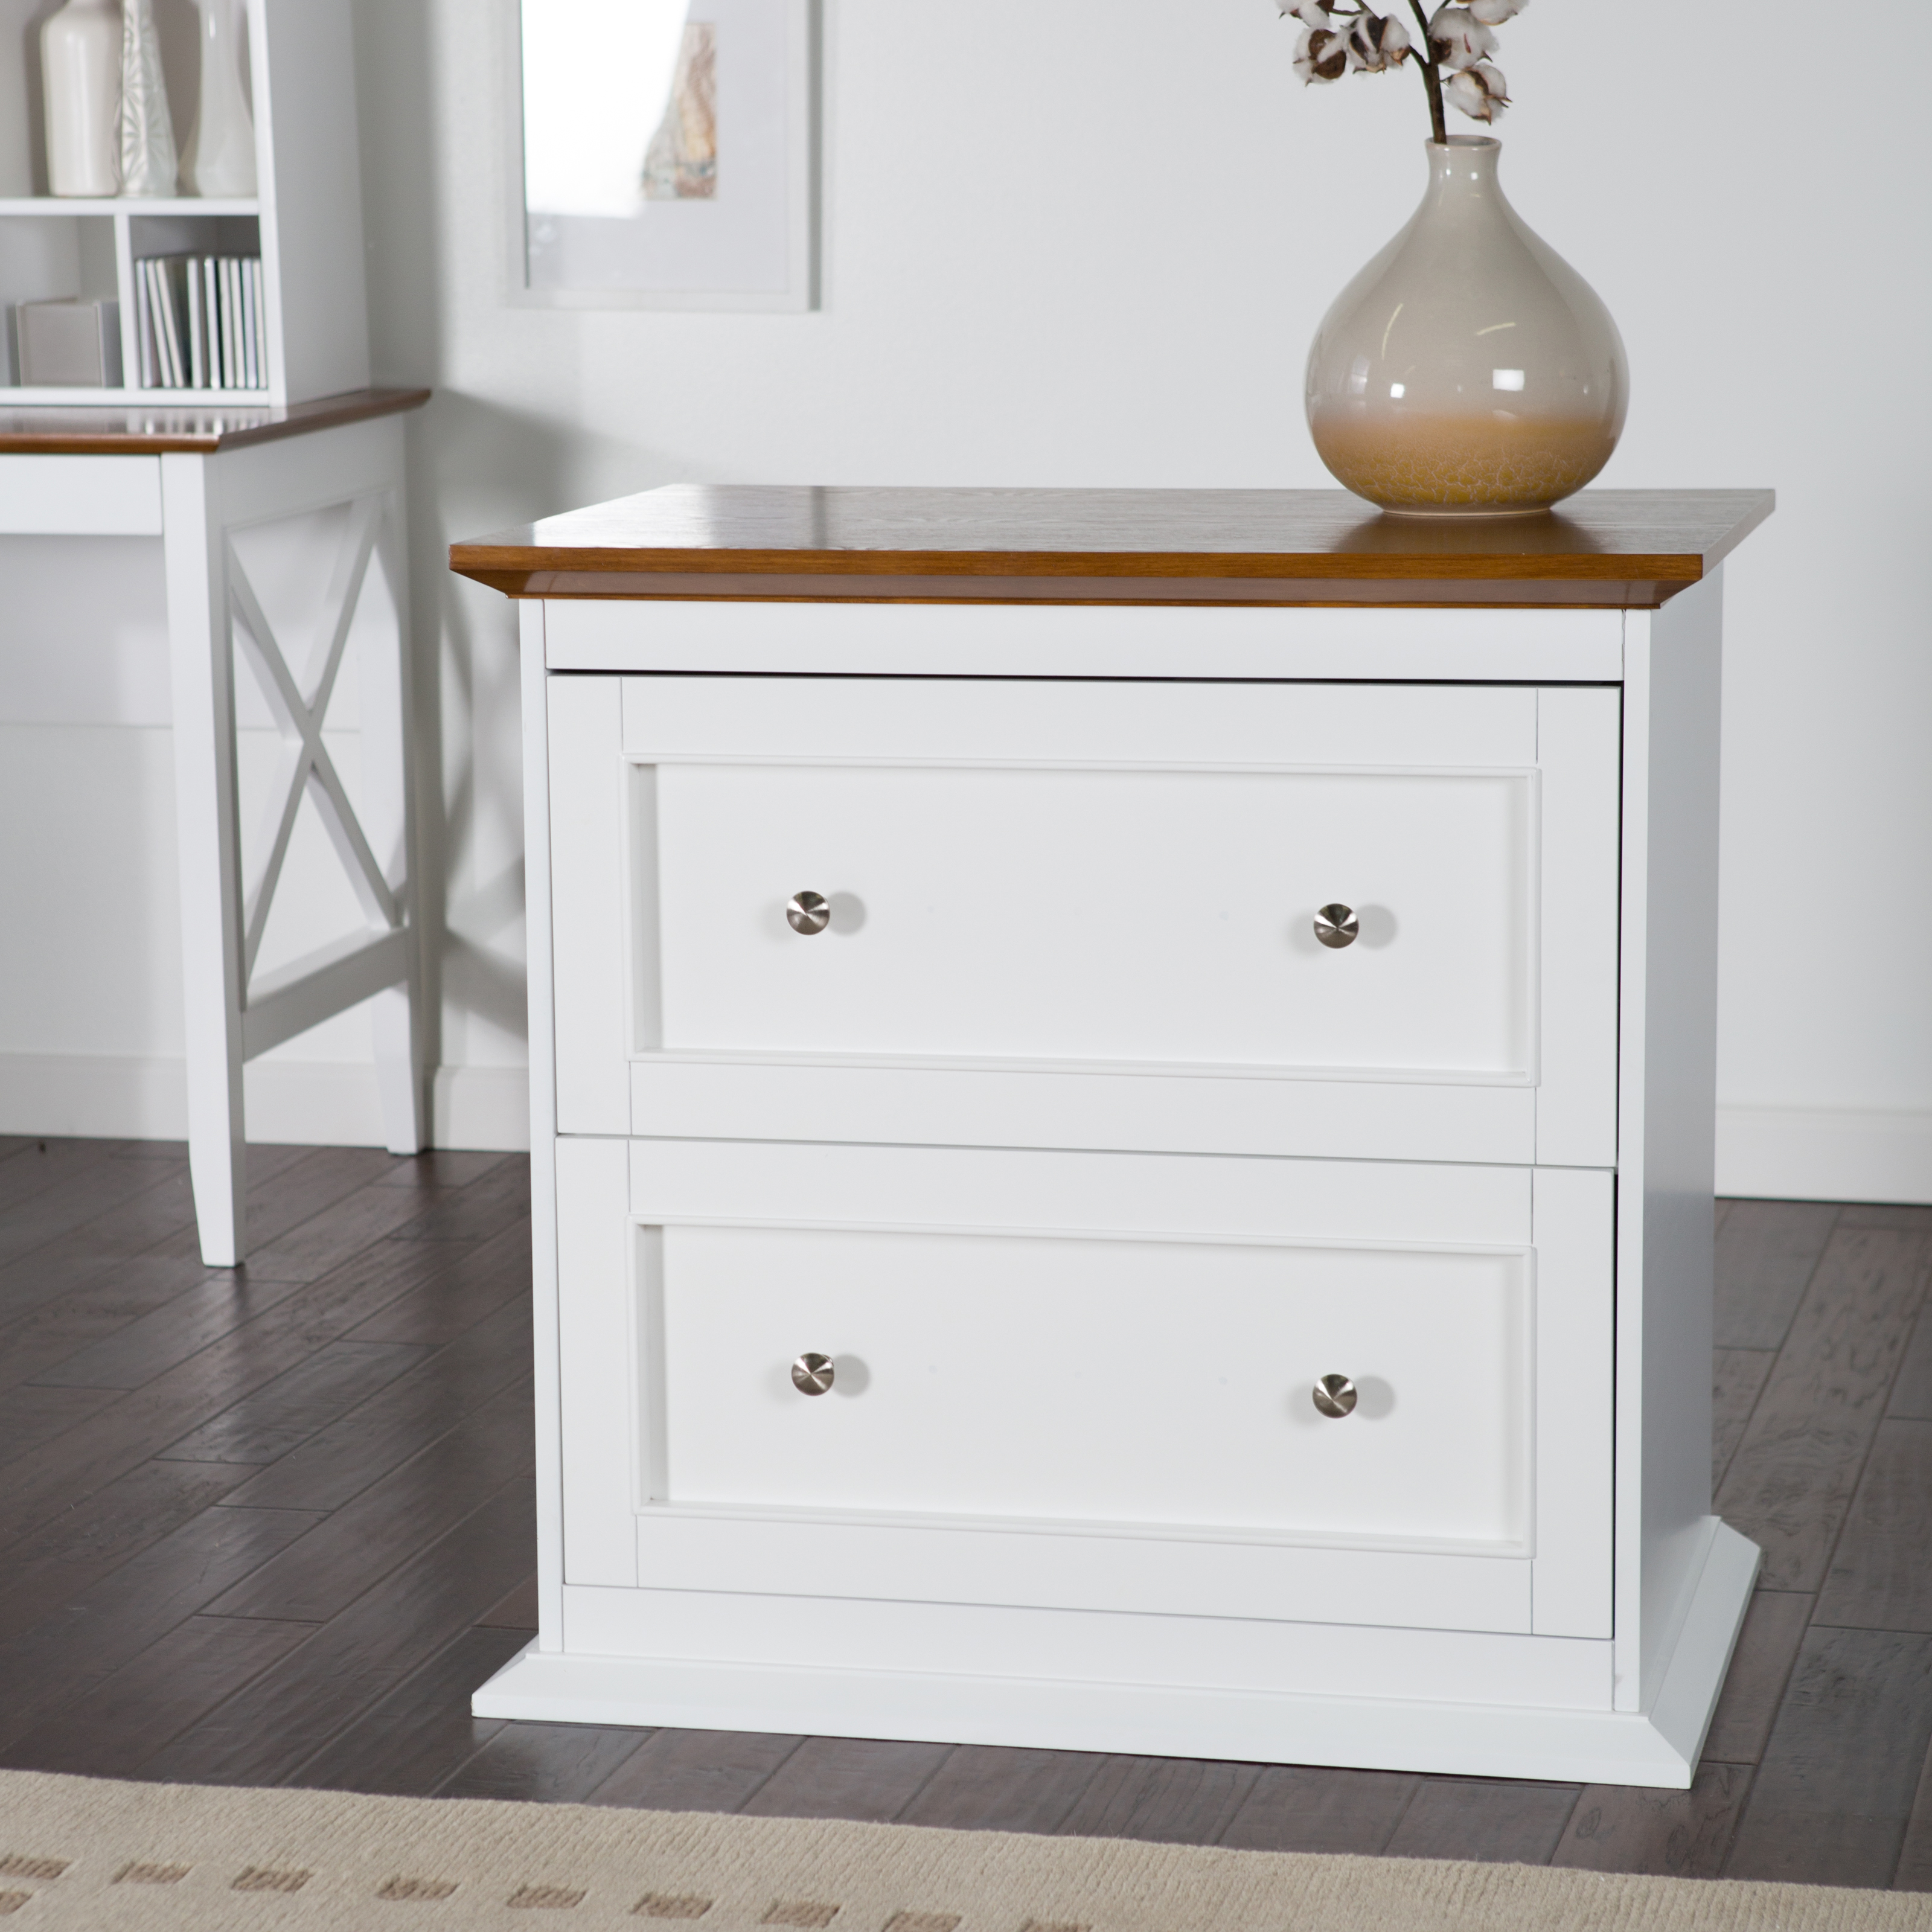 Belham Living Hampton 2 Drawer Lateral Wood File Cabinet   White/Oak |  Hayneedle